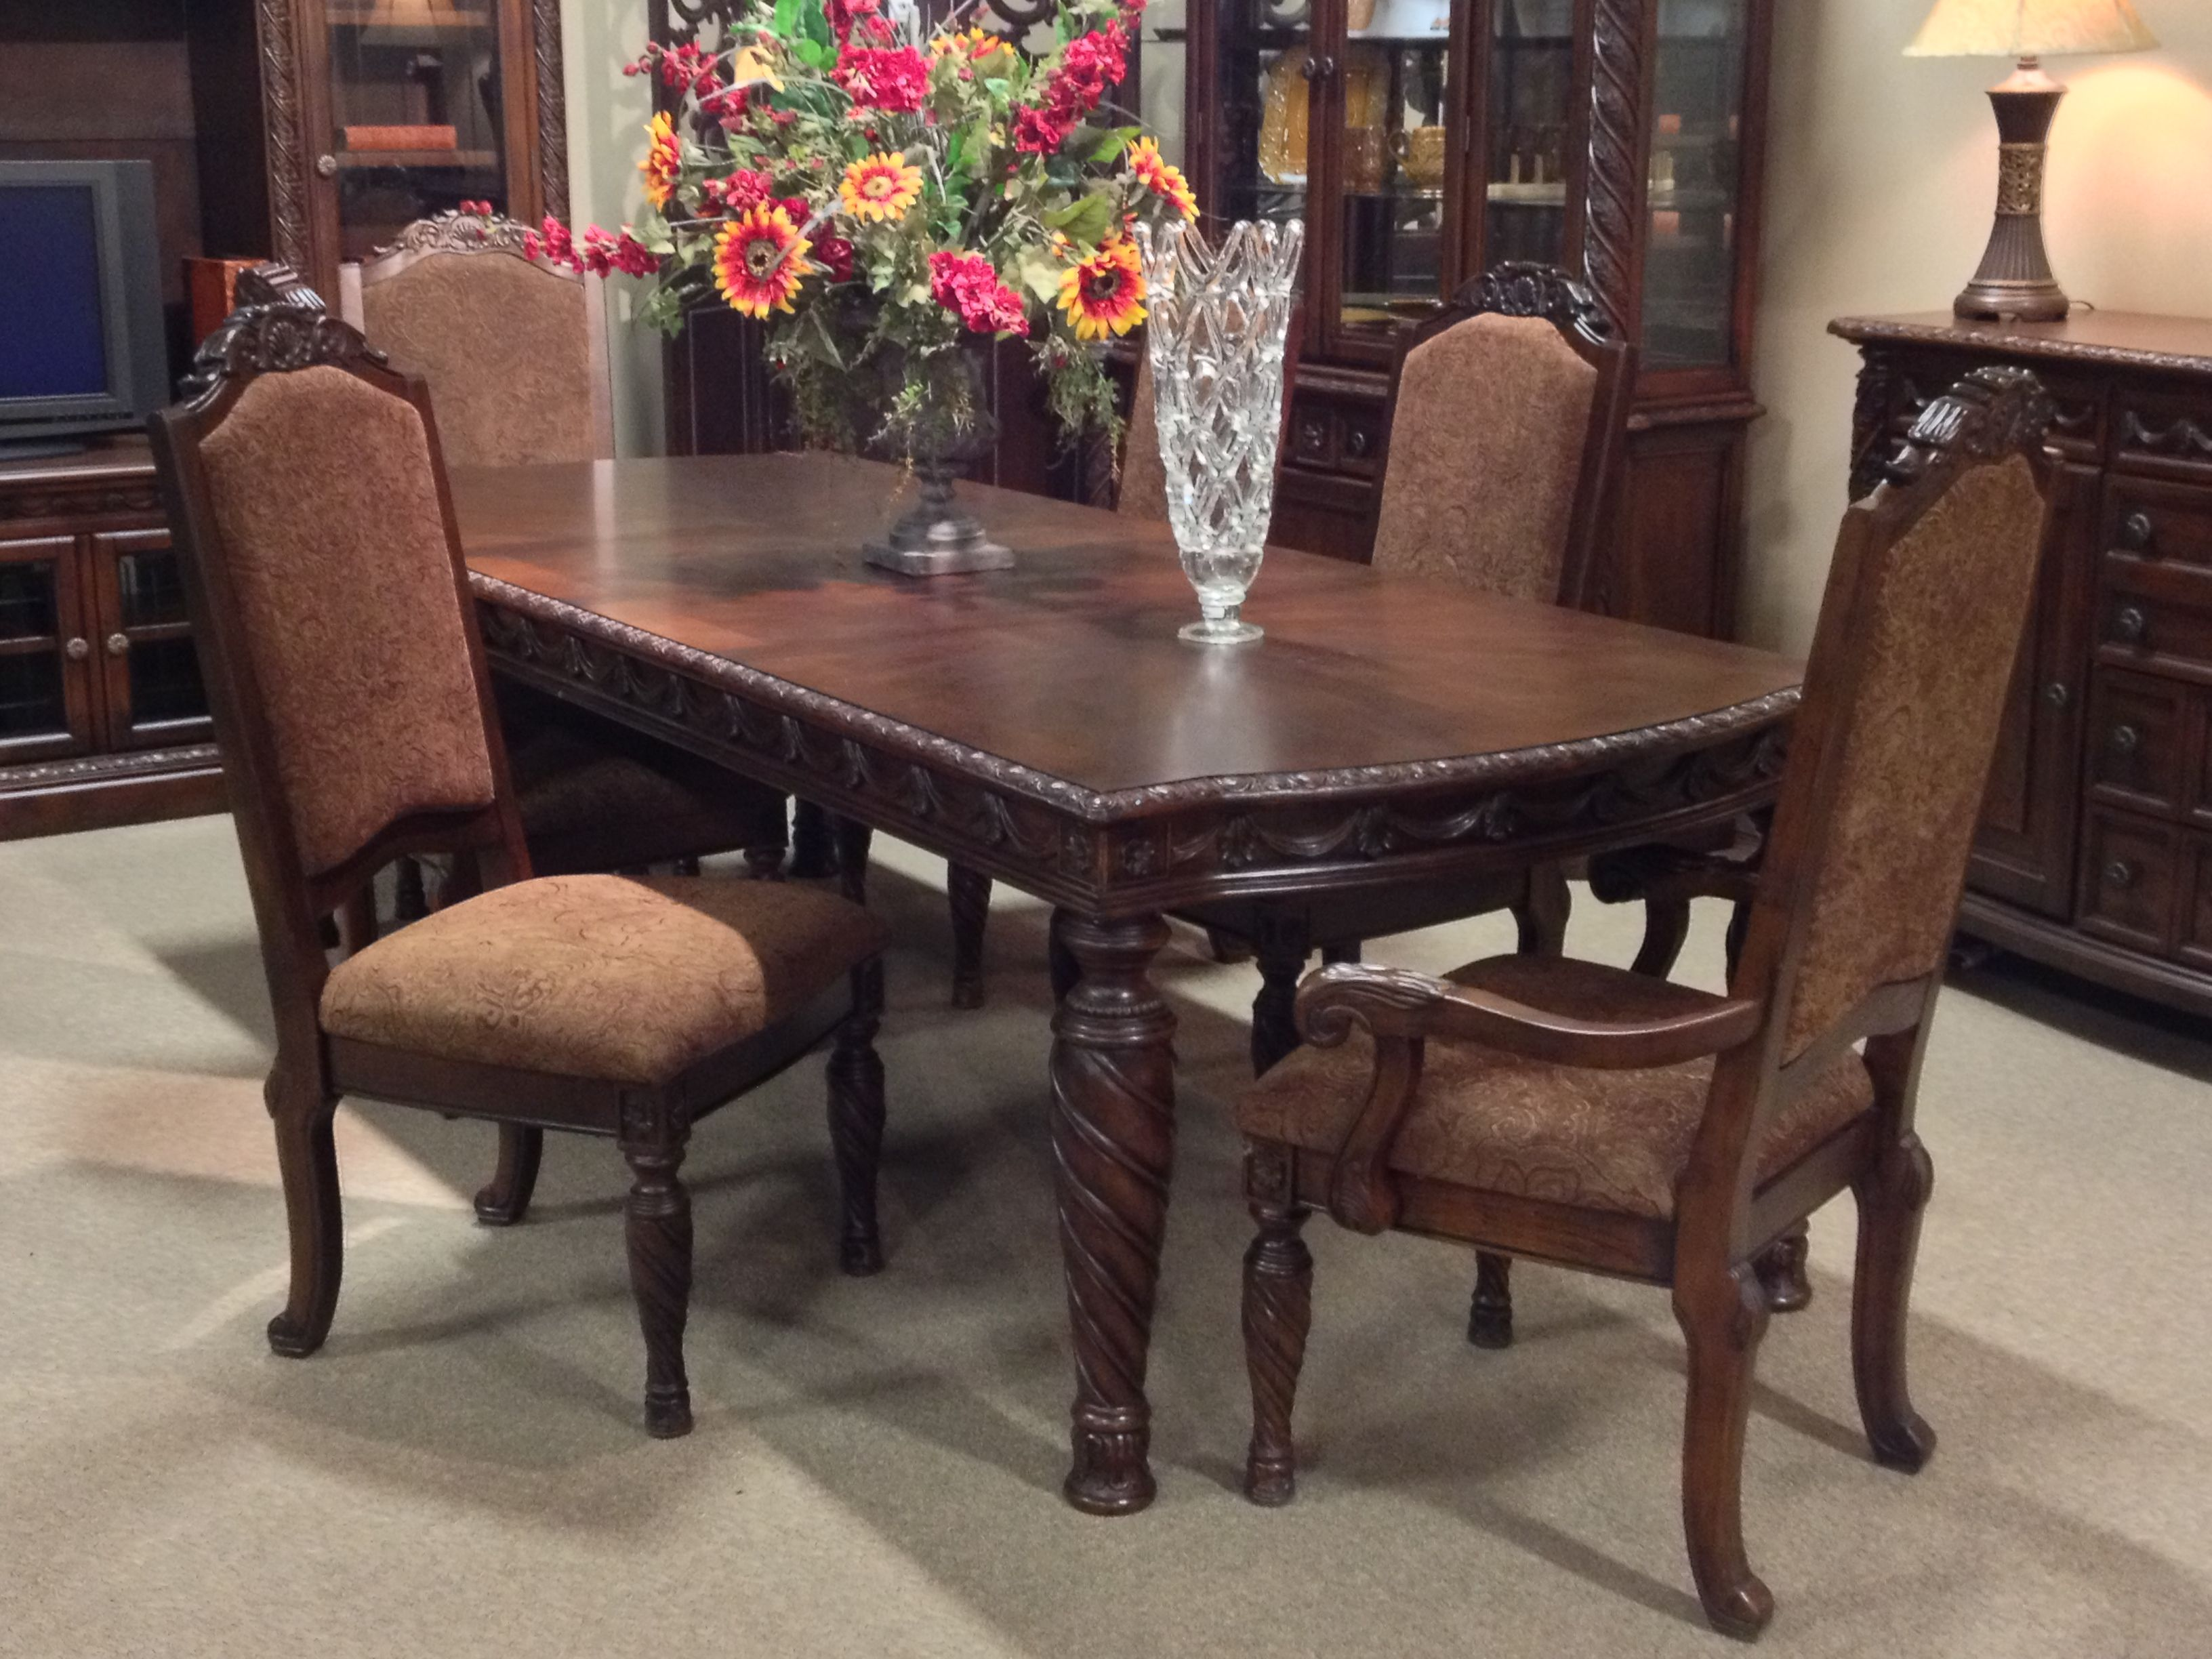 North Shore 7 Piece #dining Room Set At Ashley #furniture In Adorable Ashley Dining Room Table Set Decorating Inspiration